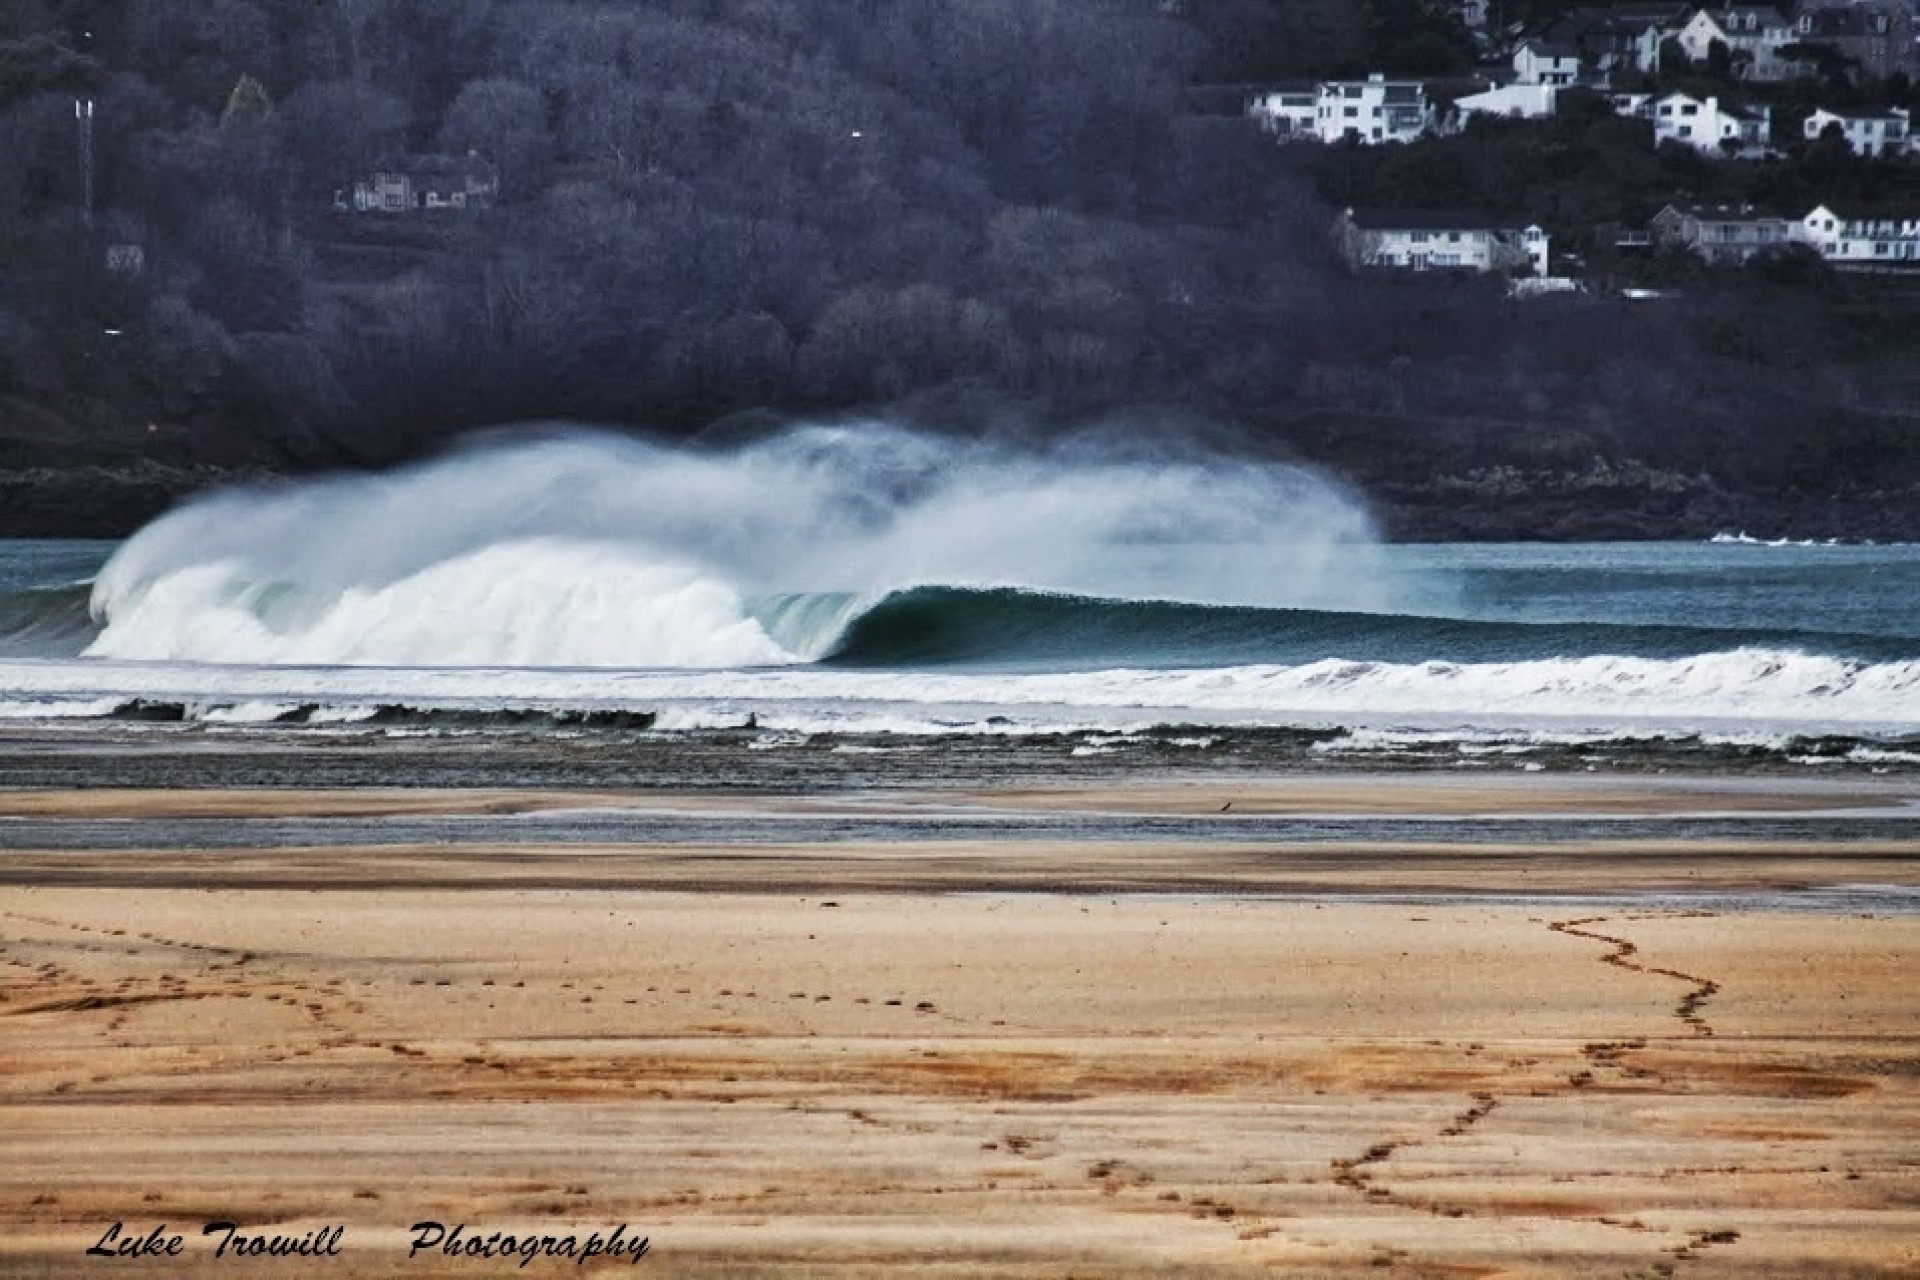 Lukes Surf Photos's photo of Godrevy